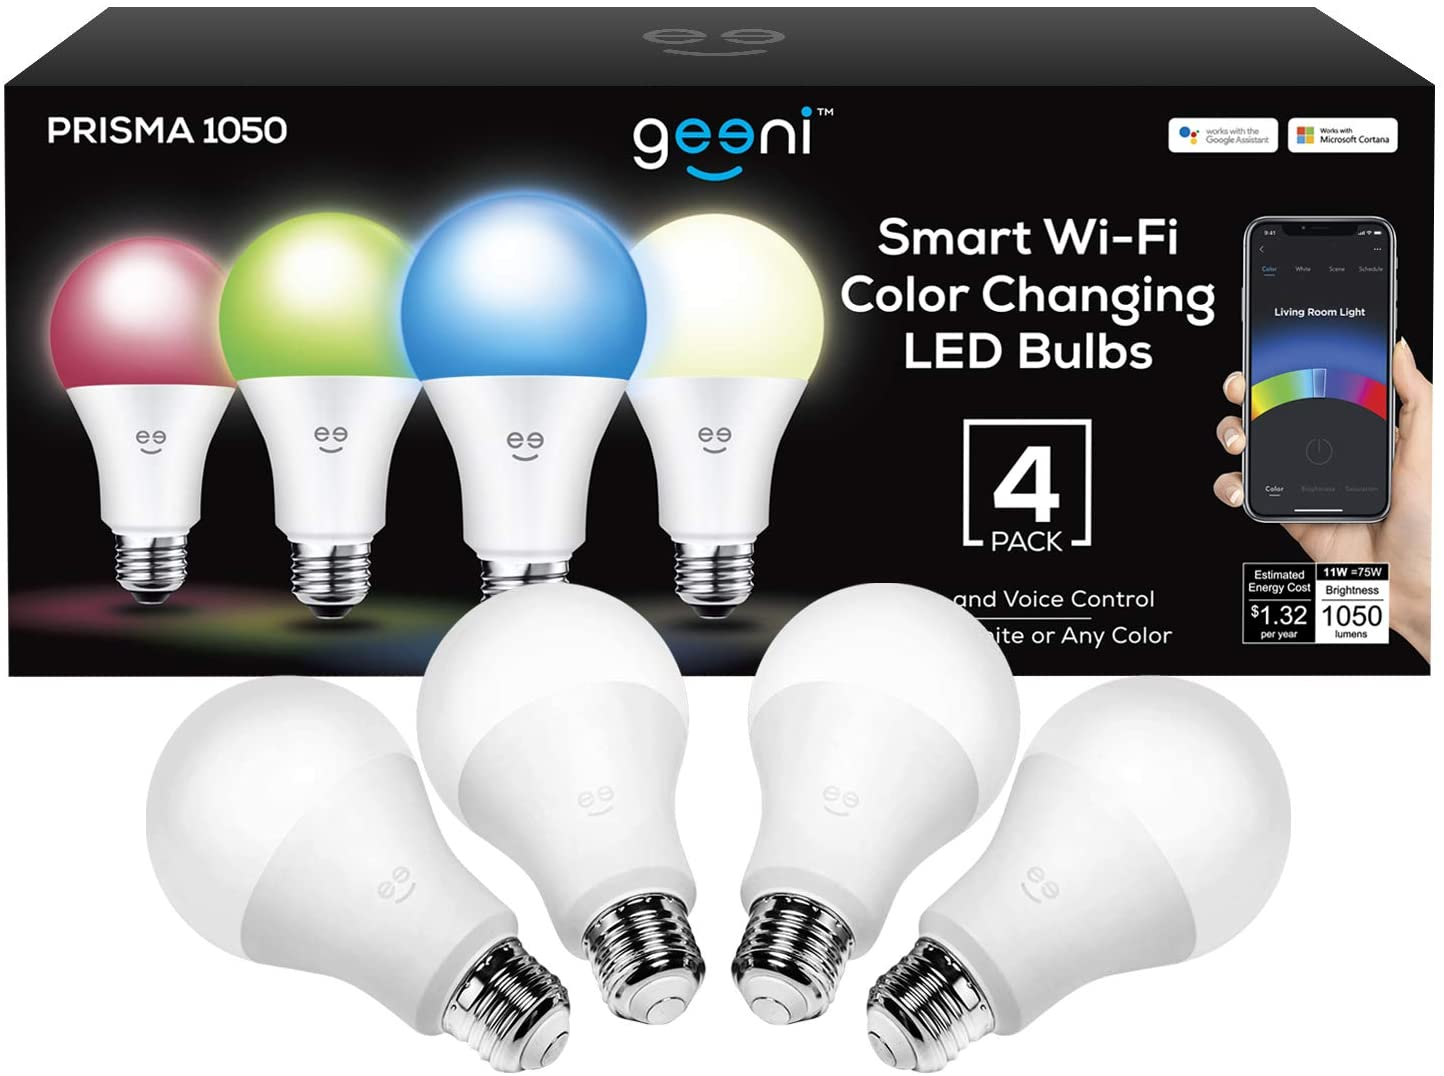 Geeni Prisma 1050 Wi-Fi Multicolor Light Bulbs (2700K), 4-Pack – Dimmable LED Bulbs, 75-Watt Equivalent – No Hub Required – Works with  Alexa, Google Assistant, Microsoft Cortana - -